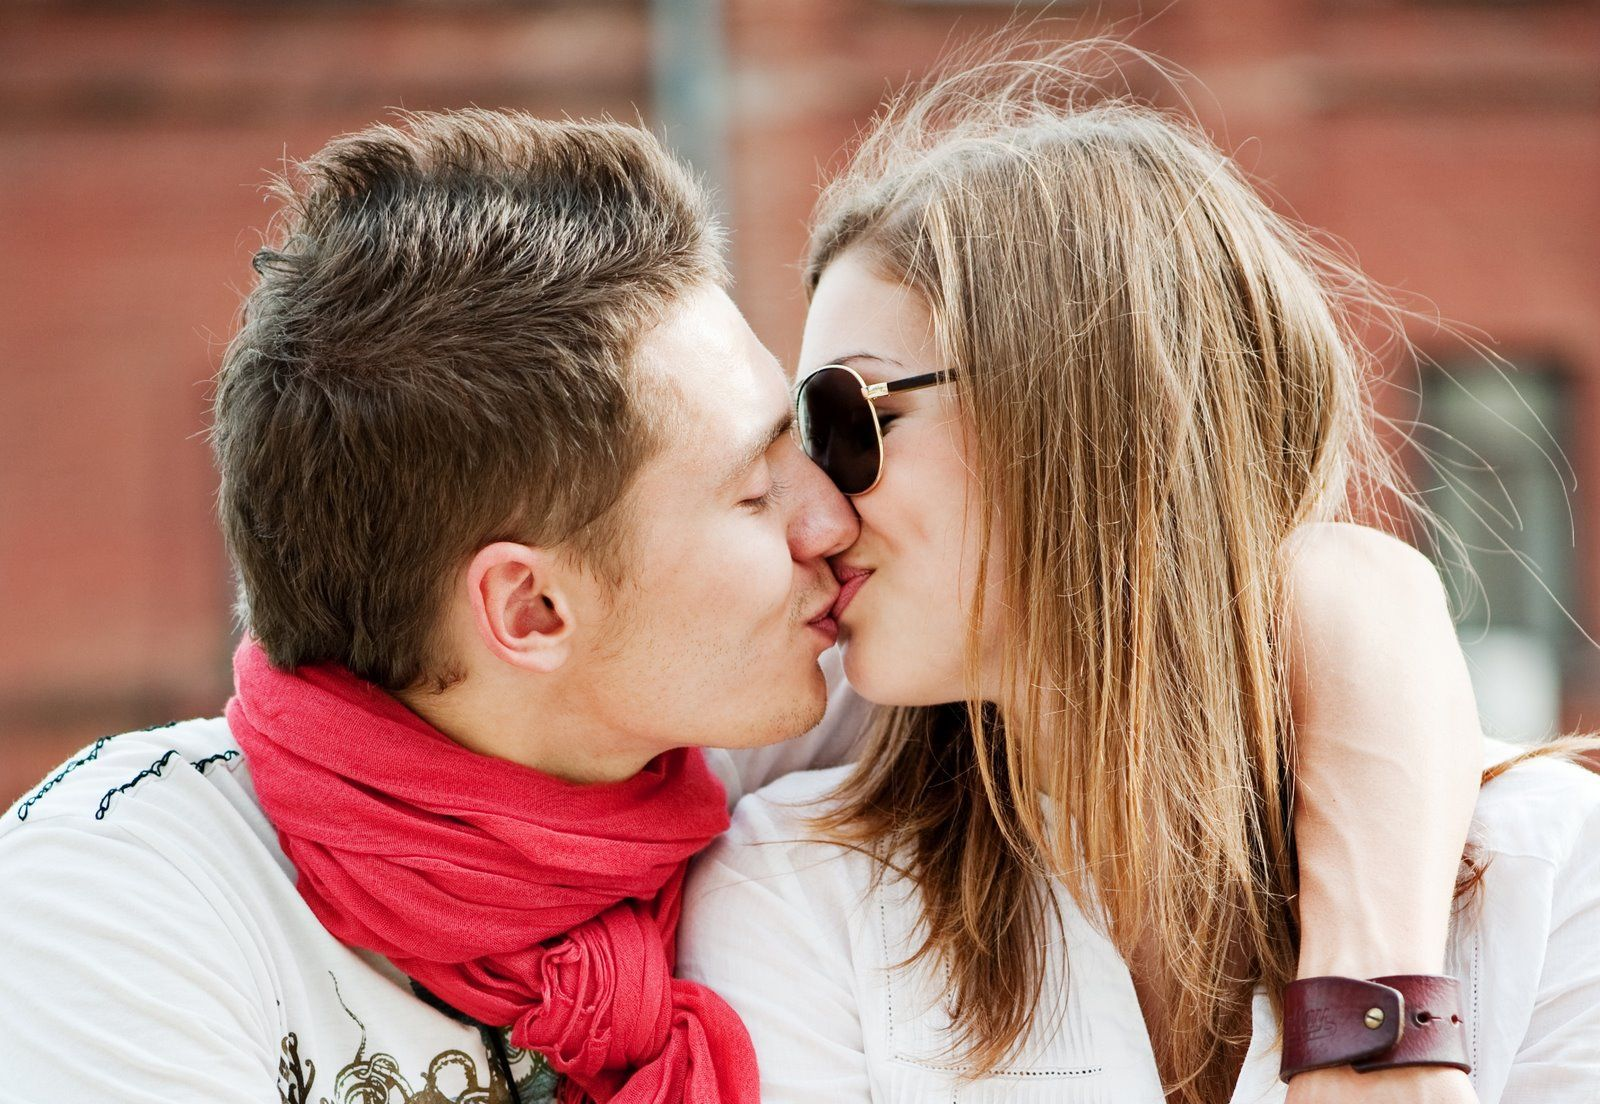 kissing pictures of love couple hd kissing wallpapers of couples